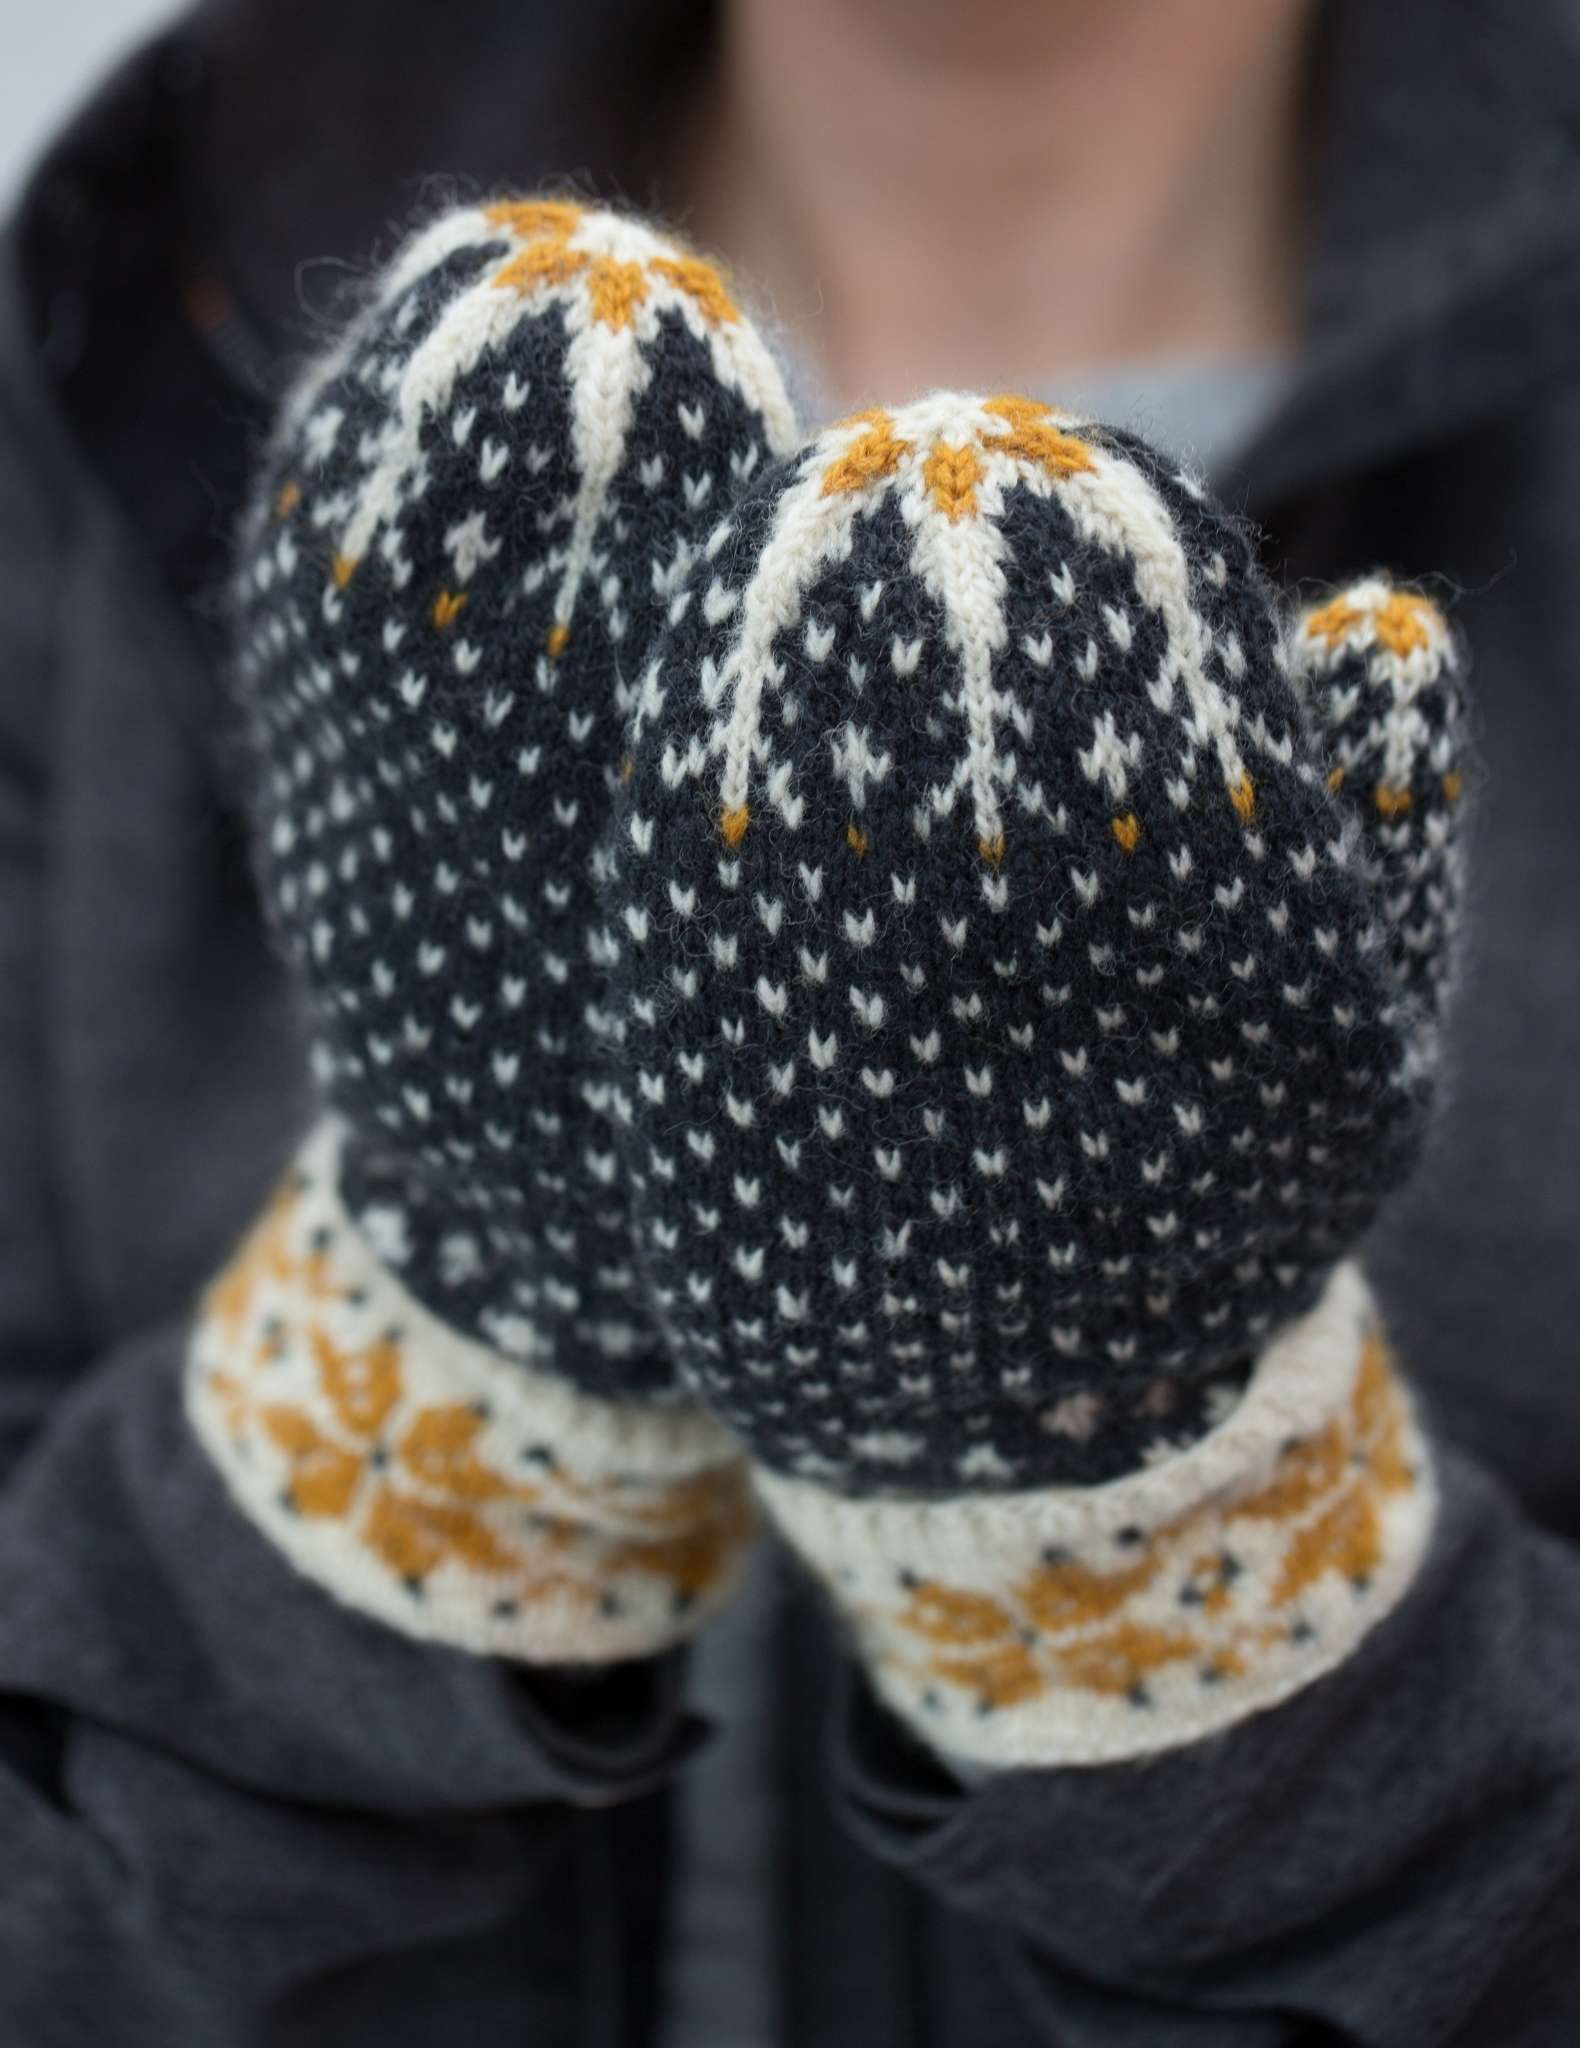 A close up of hands held close together wearing colourwork mittens in dark blue, gold and white. The cuffs and mitten tops features a snowflake motif.